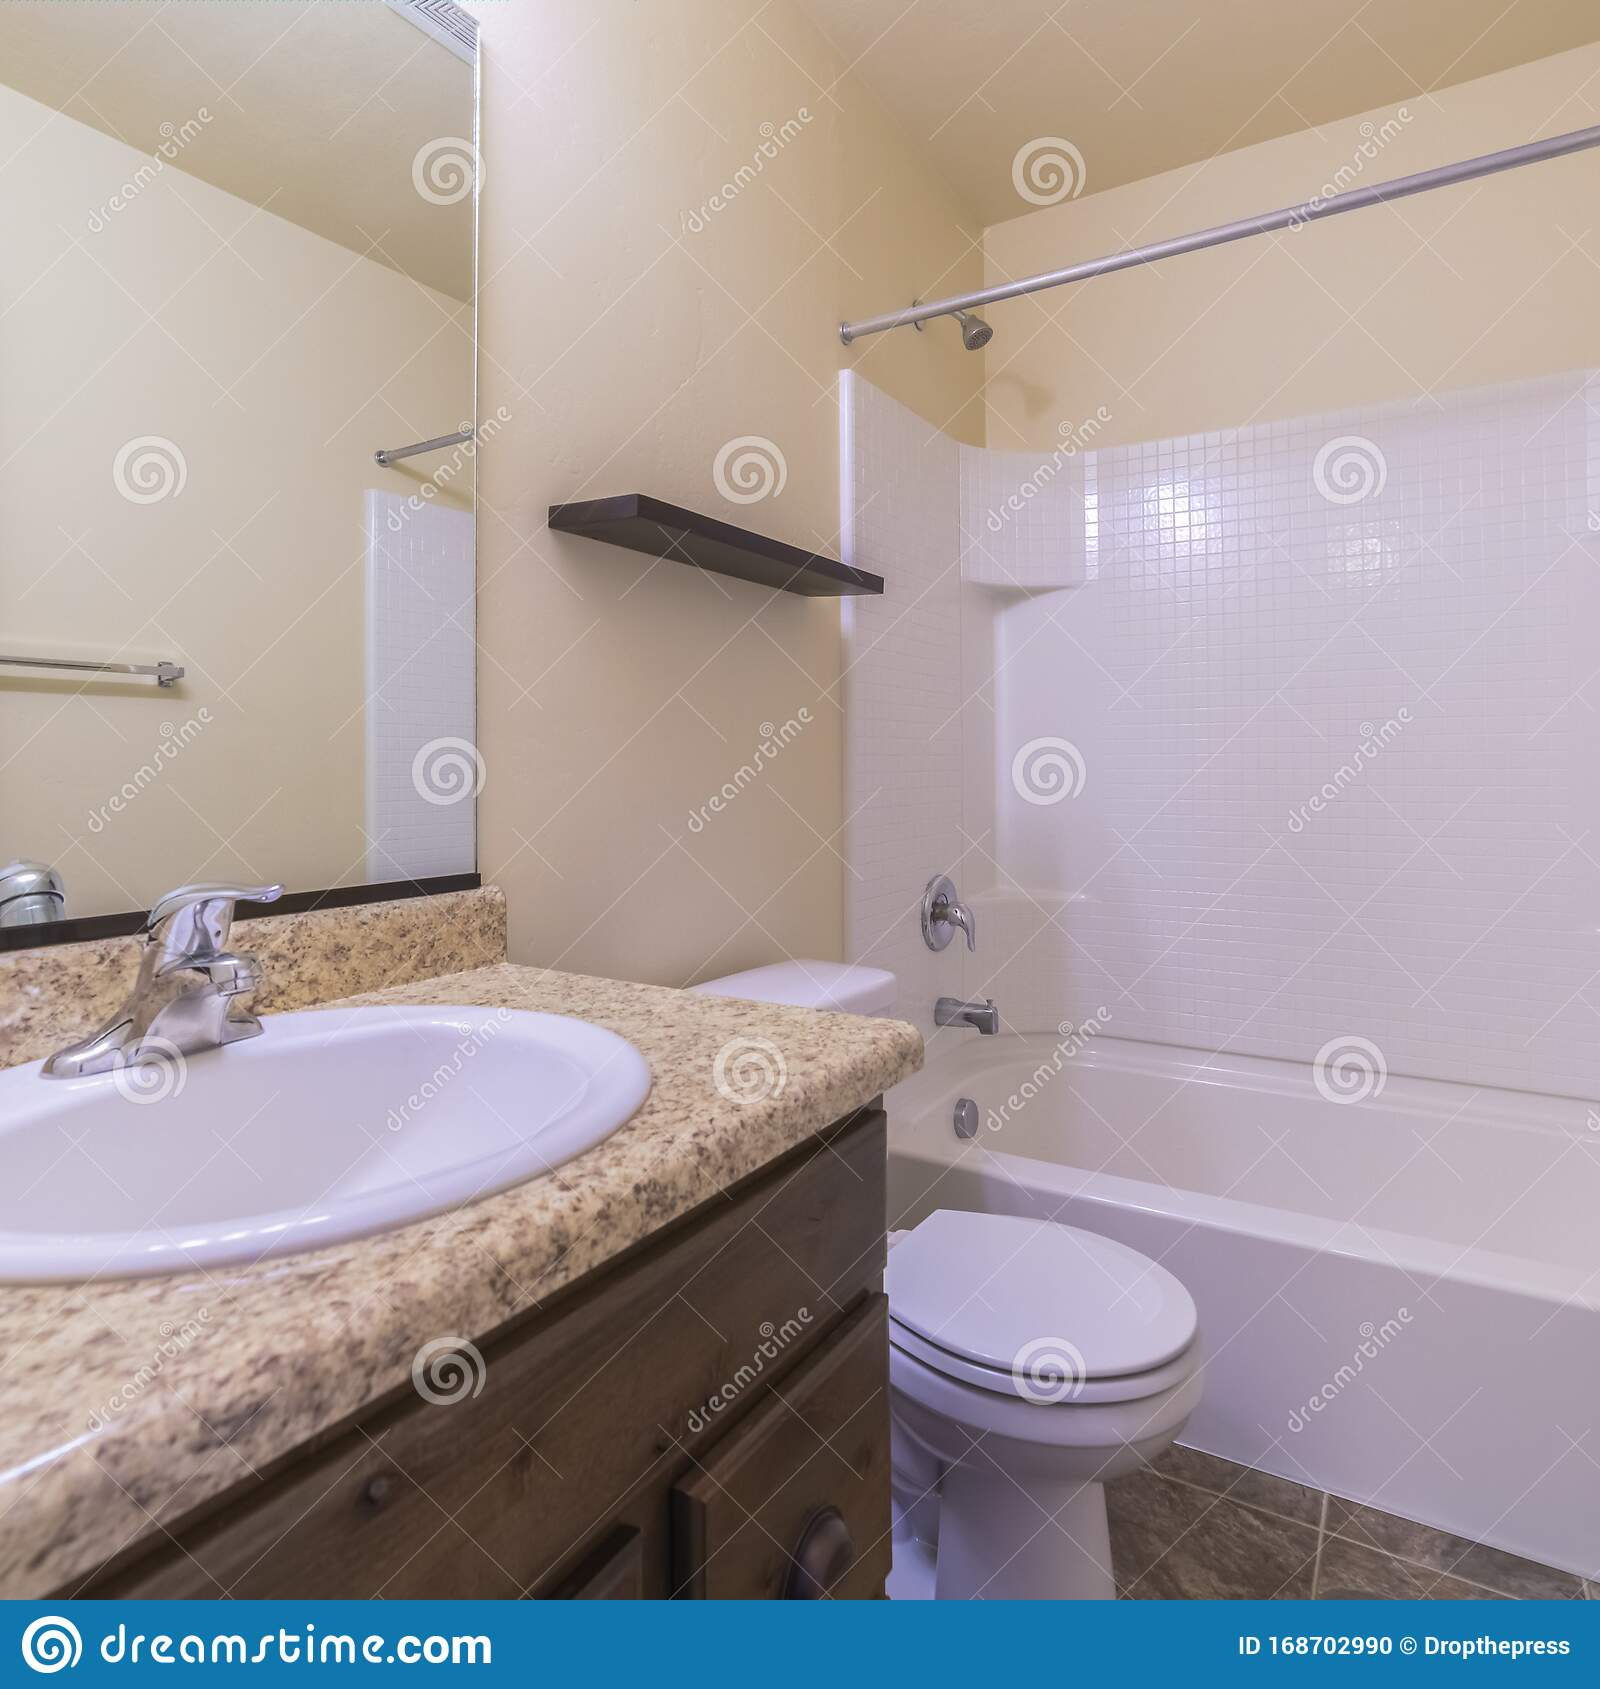 Square Frame Small Modern Bathroom Interior With Marble Vanity